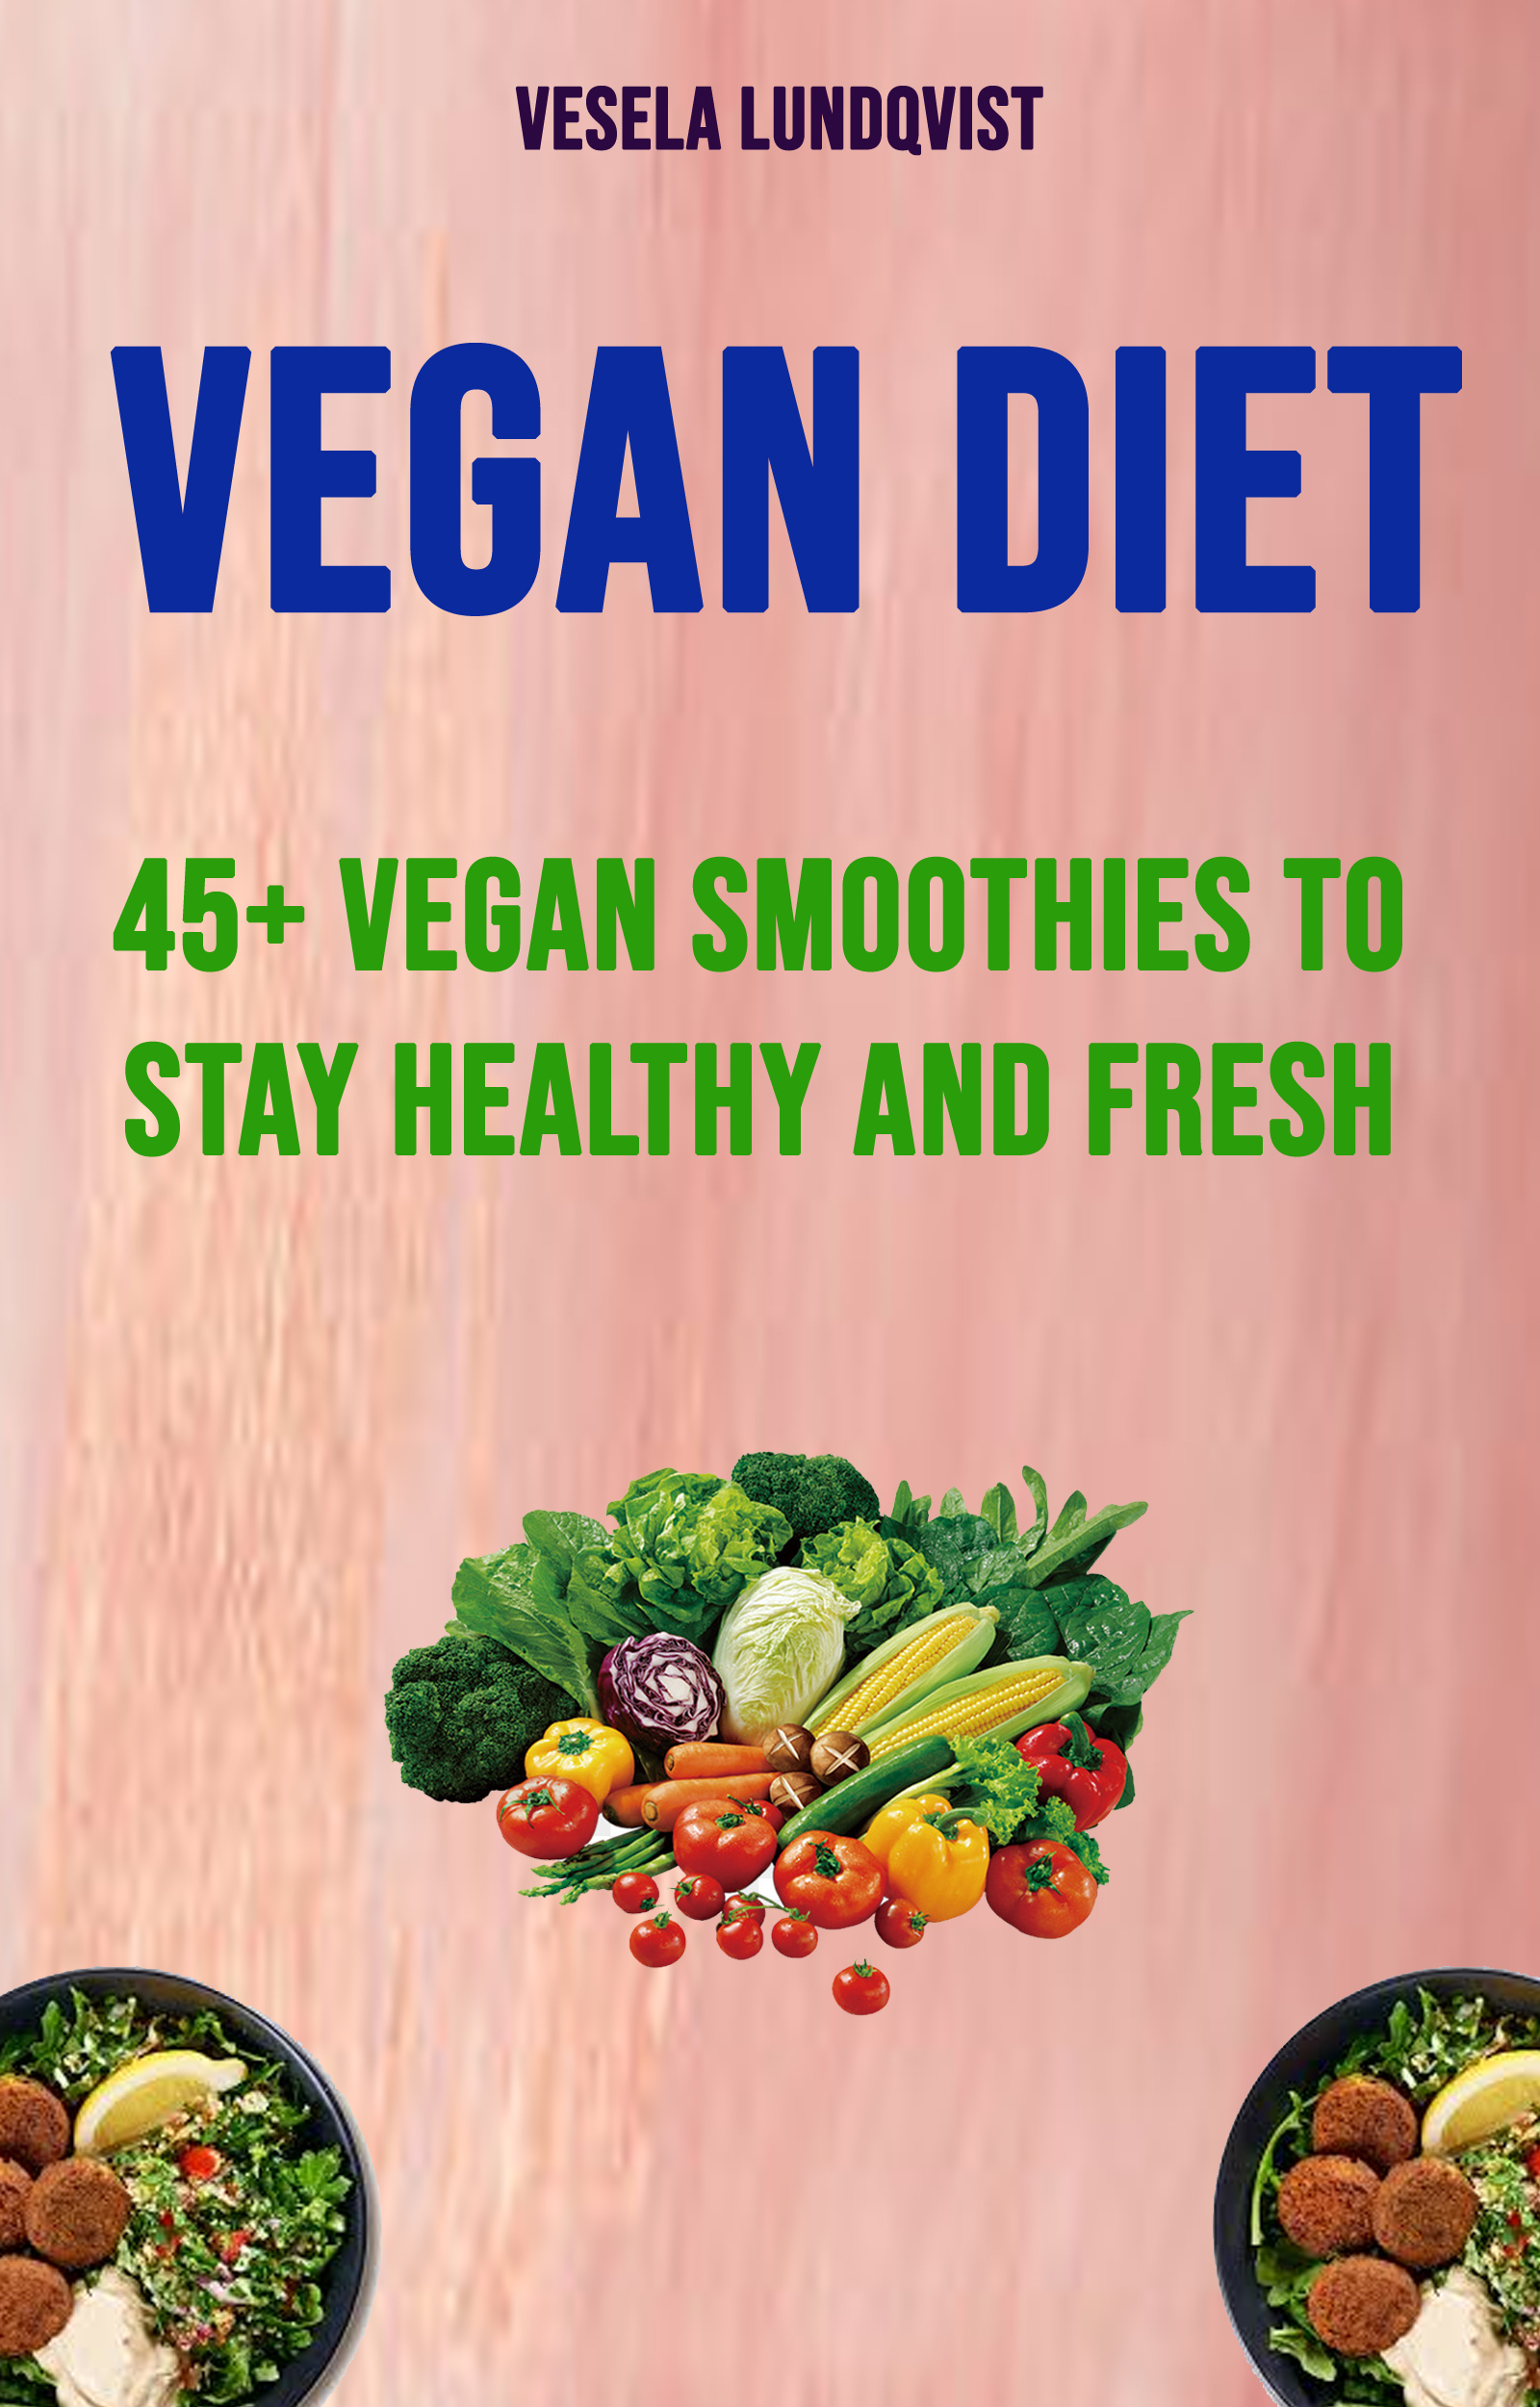 Vegan diet: 45+ vegan smoothies to stay healthy and fresh